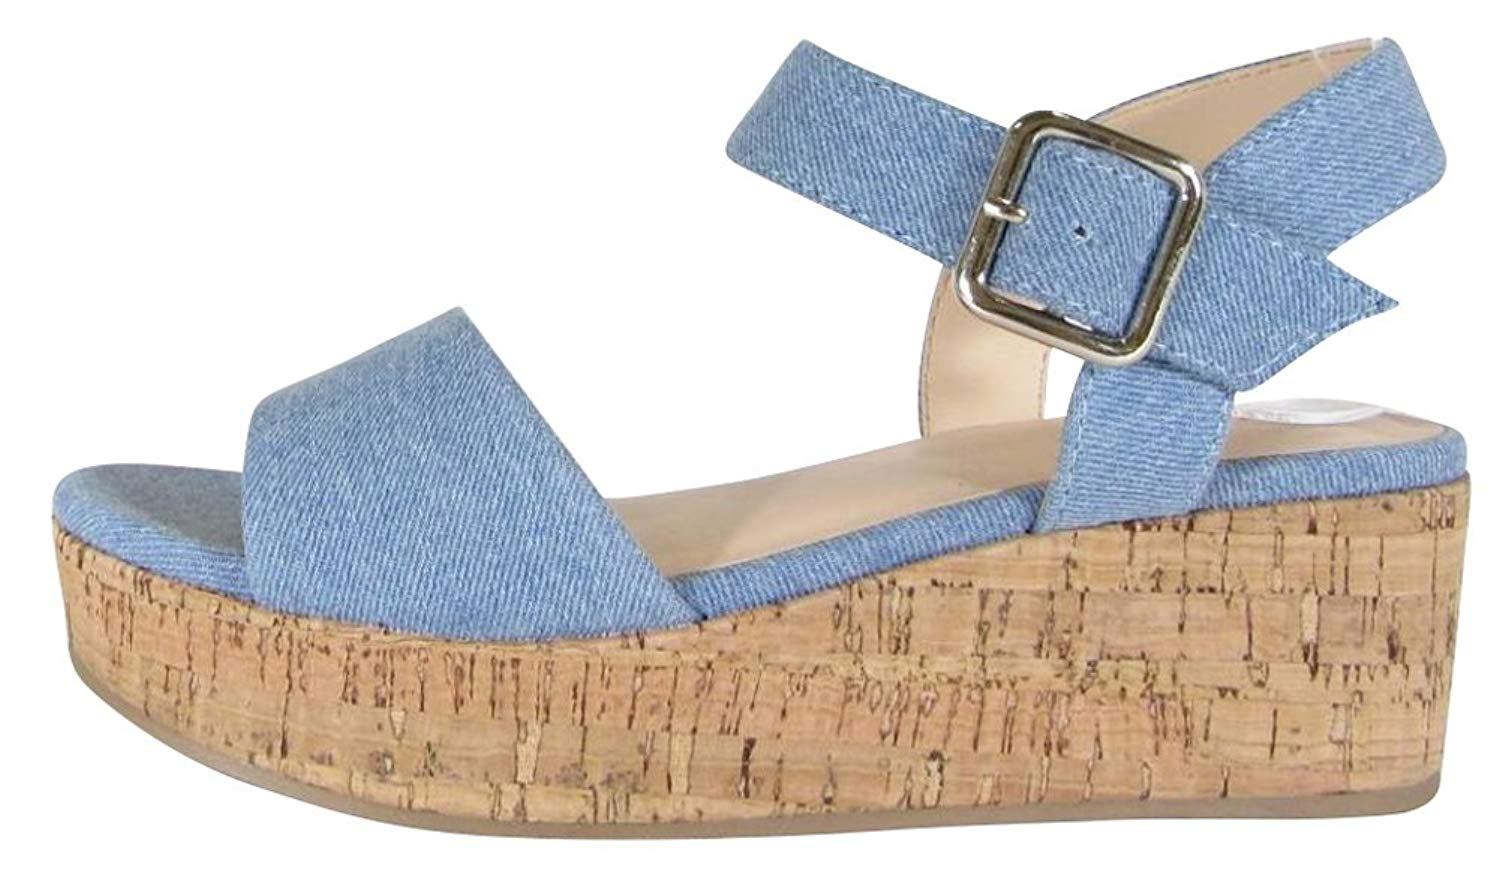 d70ae40bbd1 Get Quotations · Cambridge Select Women s Open Toe Single Band Buckled  Ankle Strap Chunky Platform Wedge Sandal